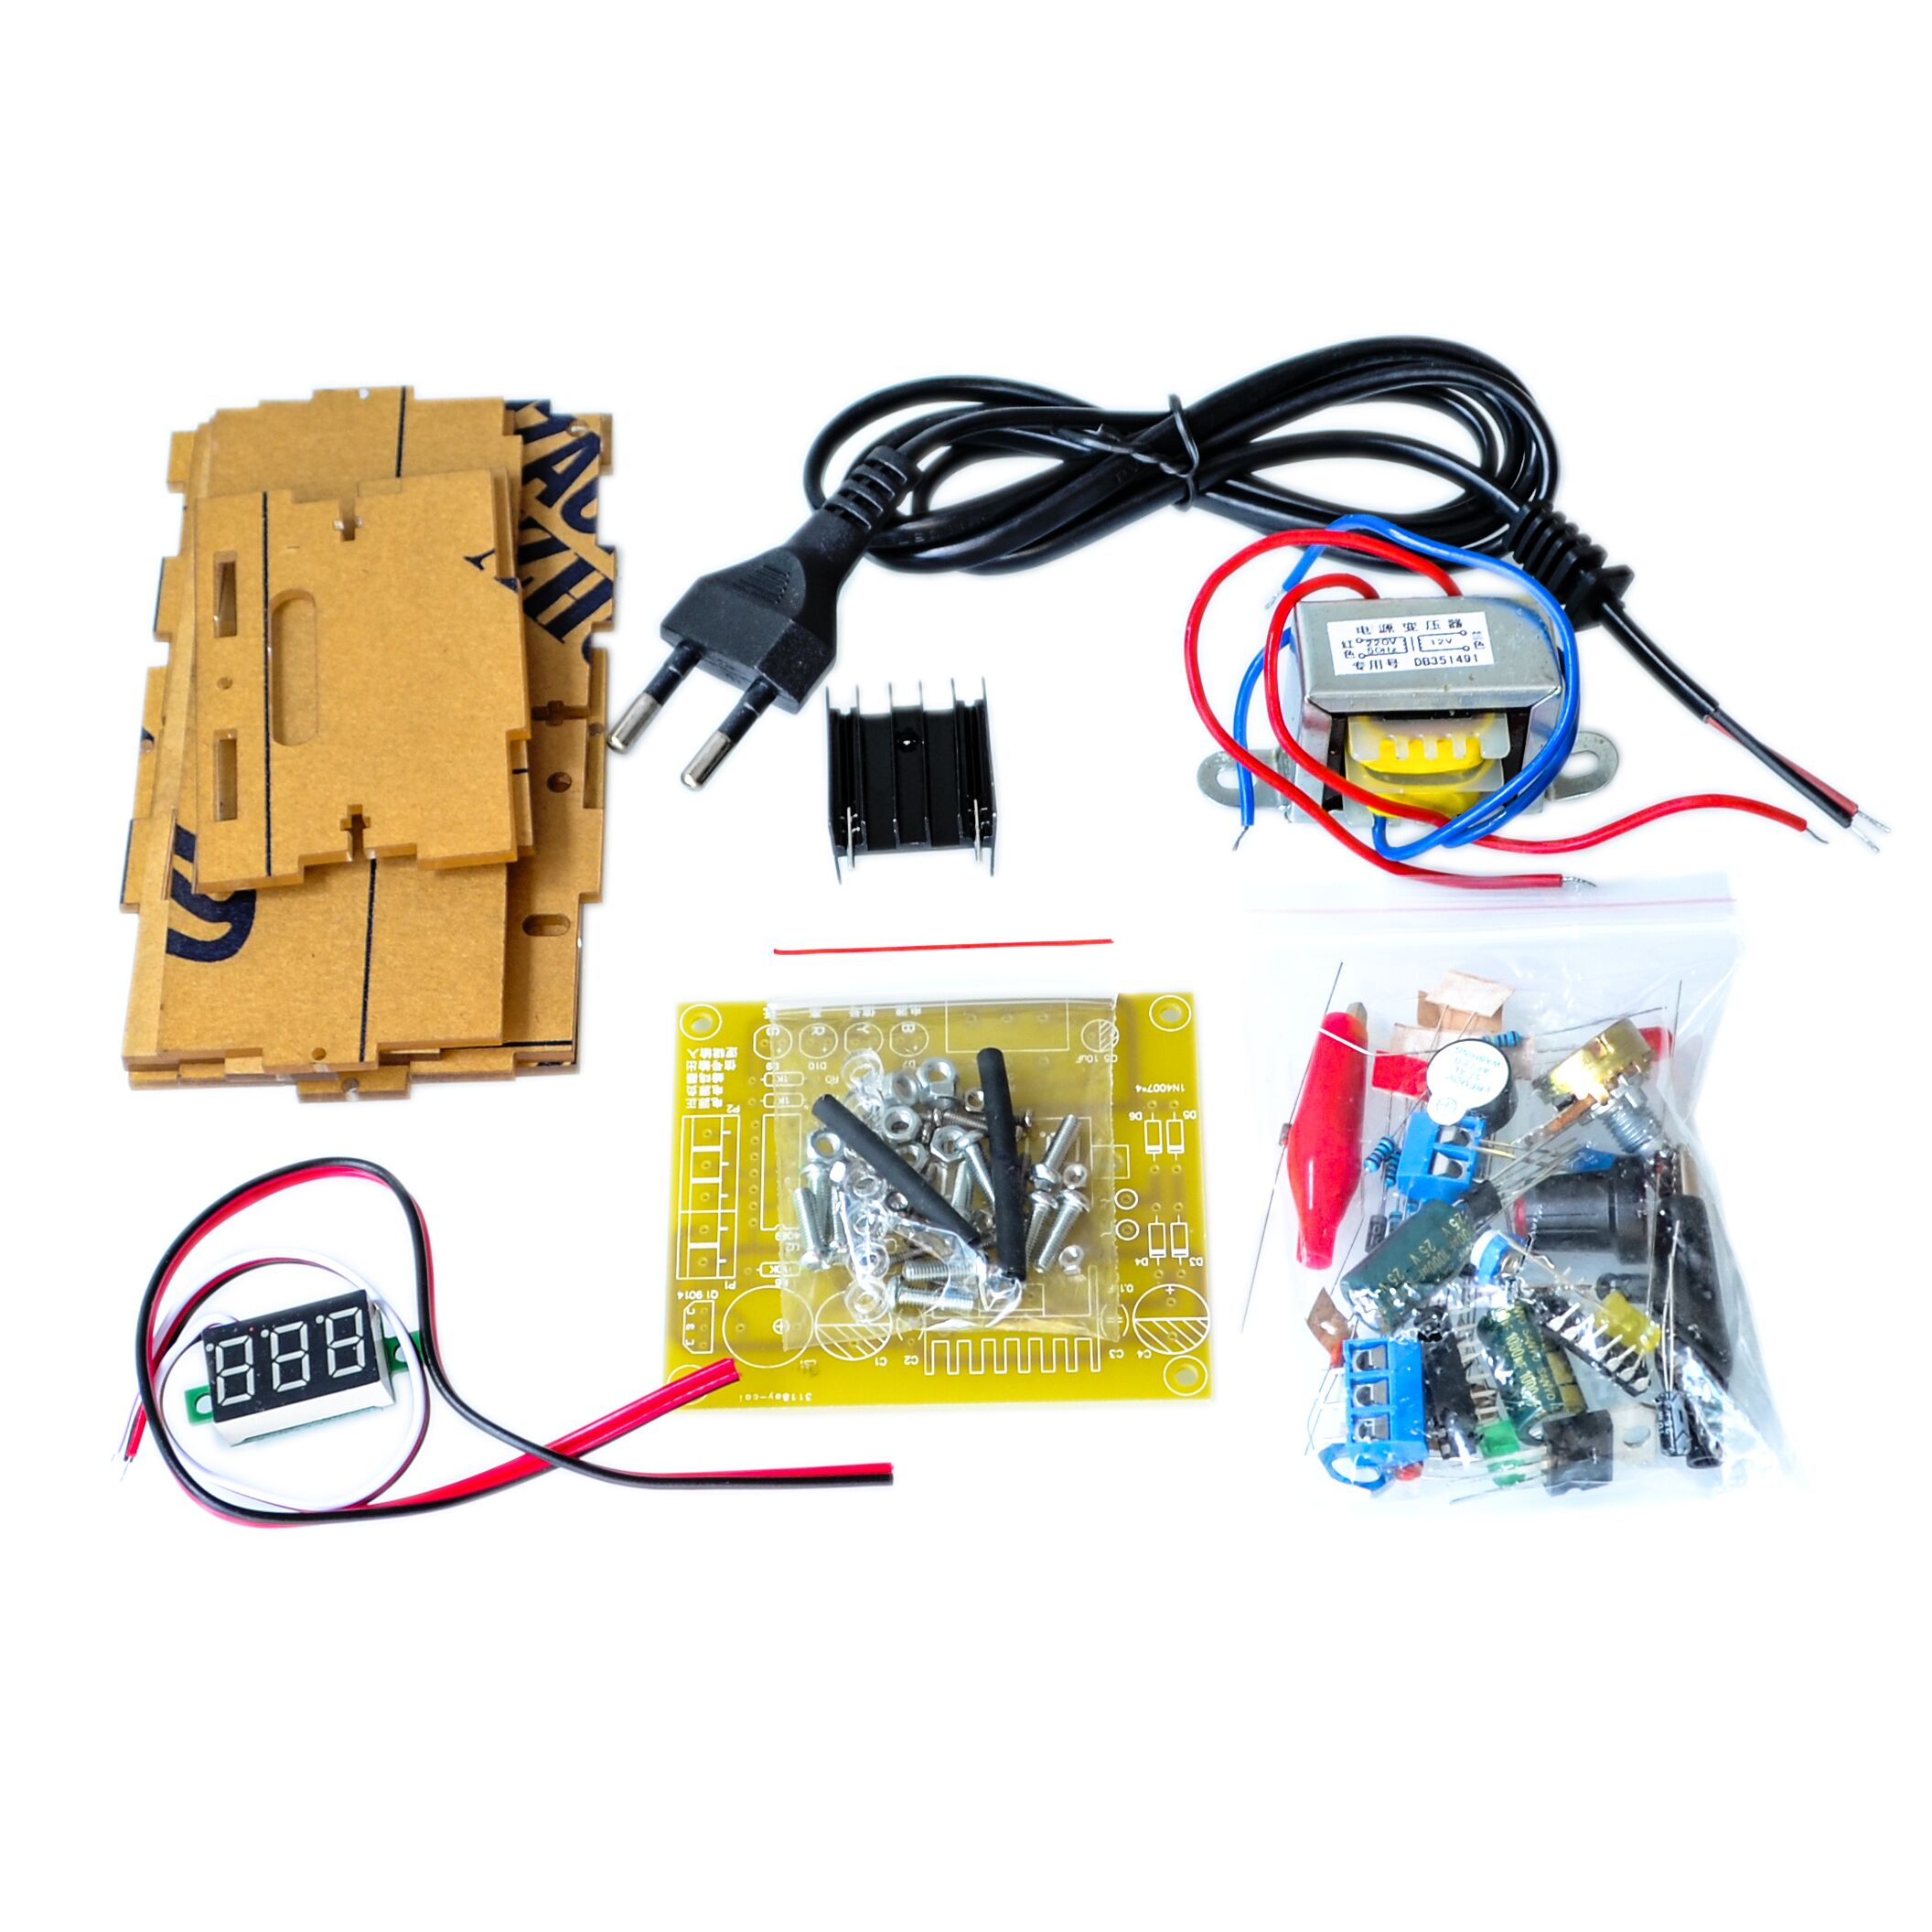 Electronic Diy Parts Lm317 Adjustable Voltage Regulator Board Kit 10a 1 30v Variable Power Supply With Transformer